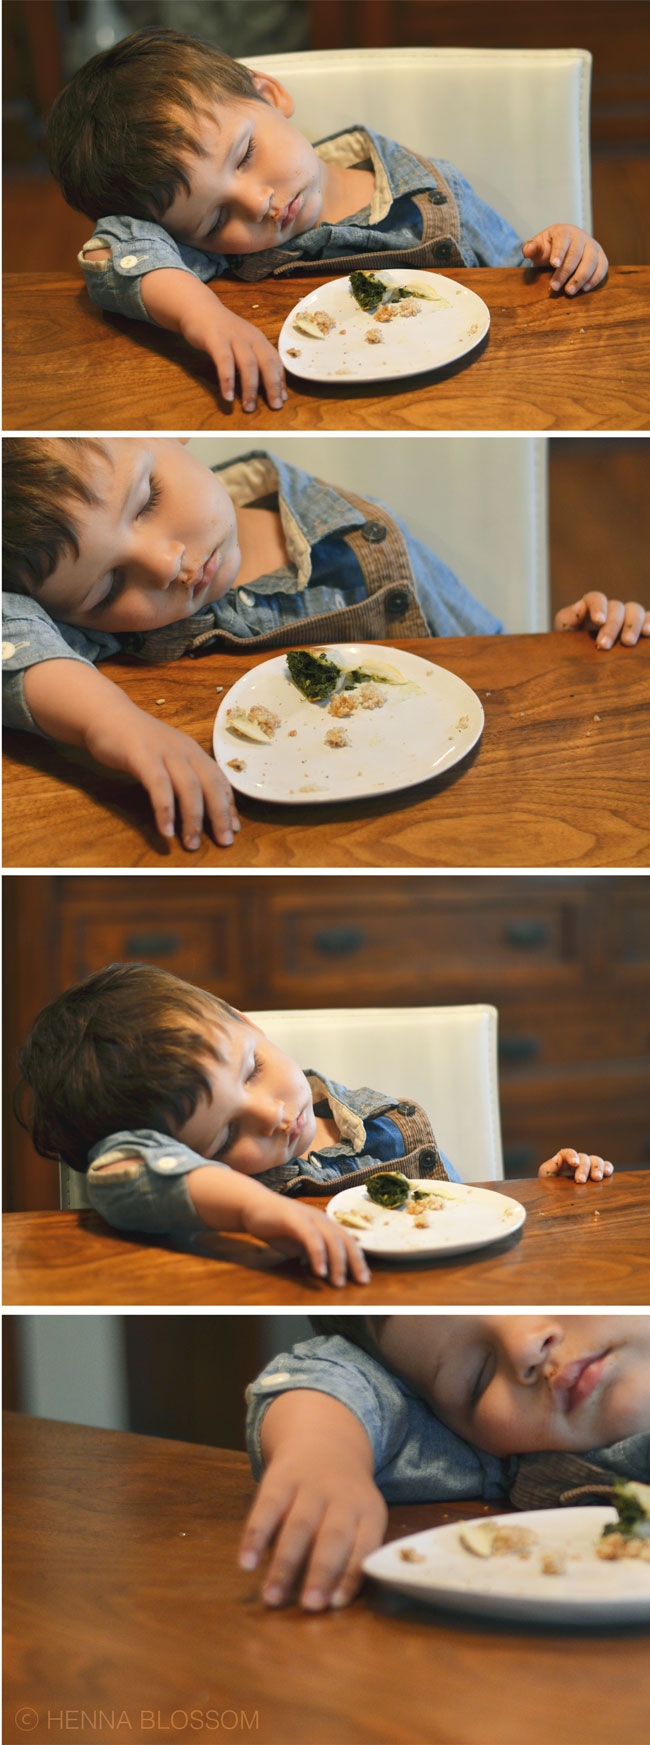 toddler jet lag: toddler asleep at the table